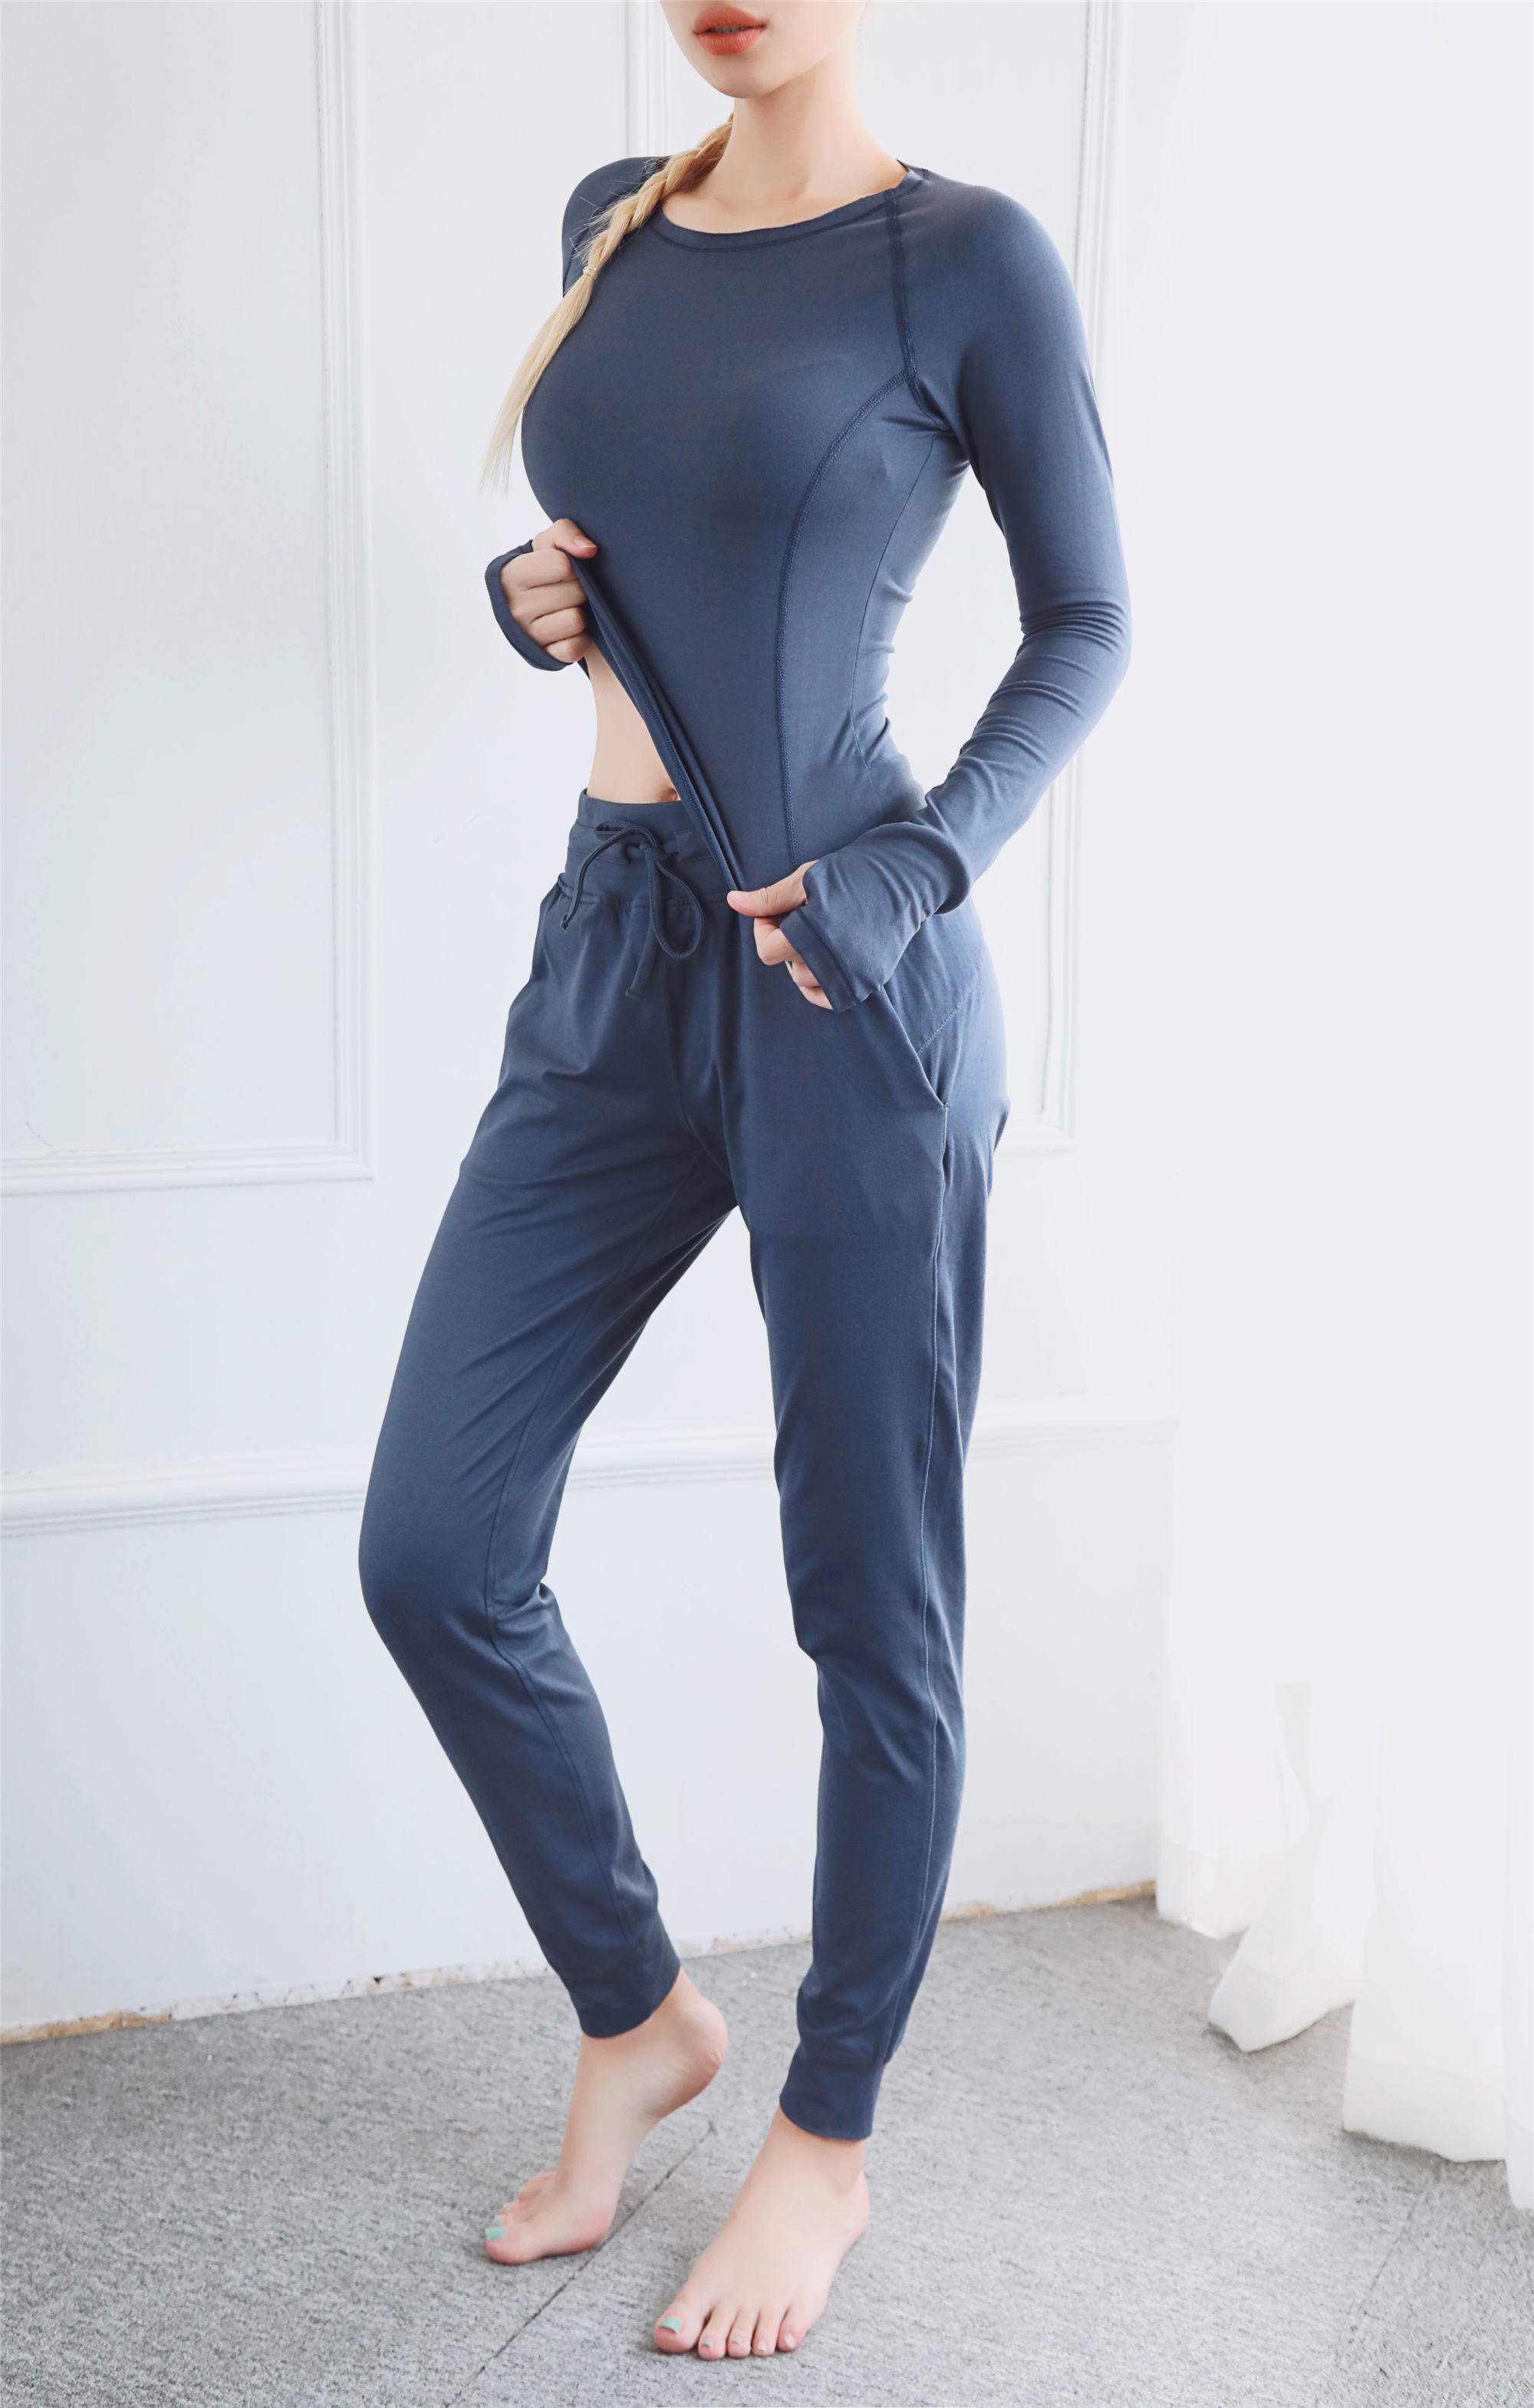 Wholesale Slimming Sports Top Fitness Wear Women Long Sleeve Running Shirts With Thumb Holes 3